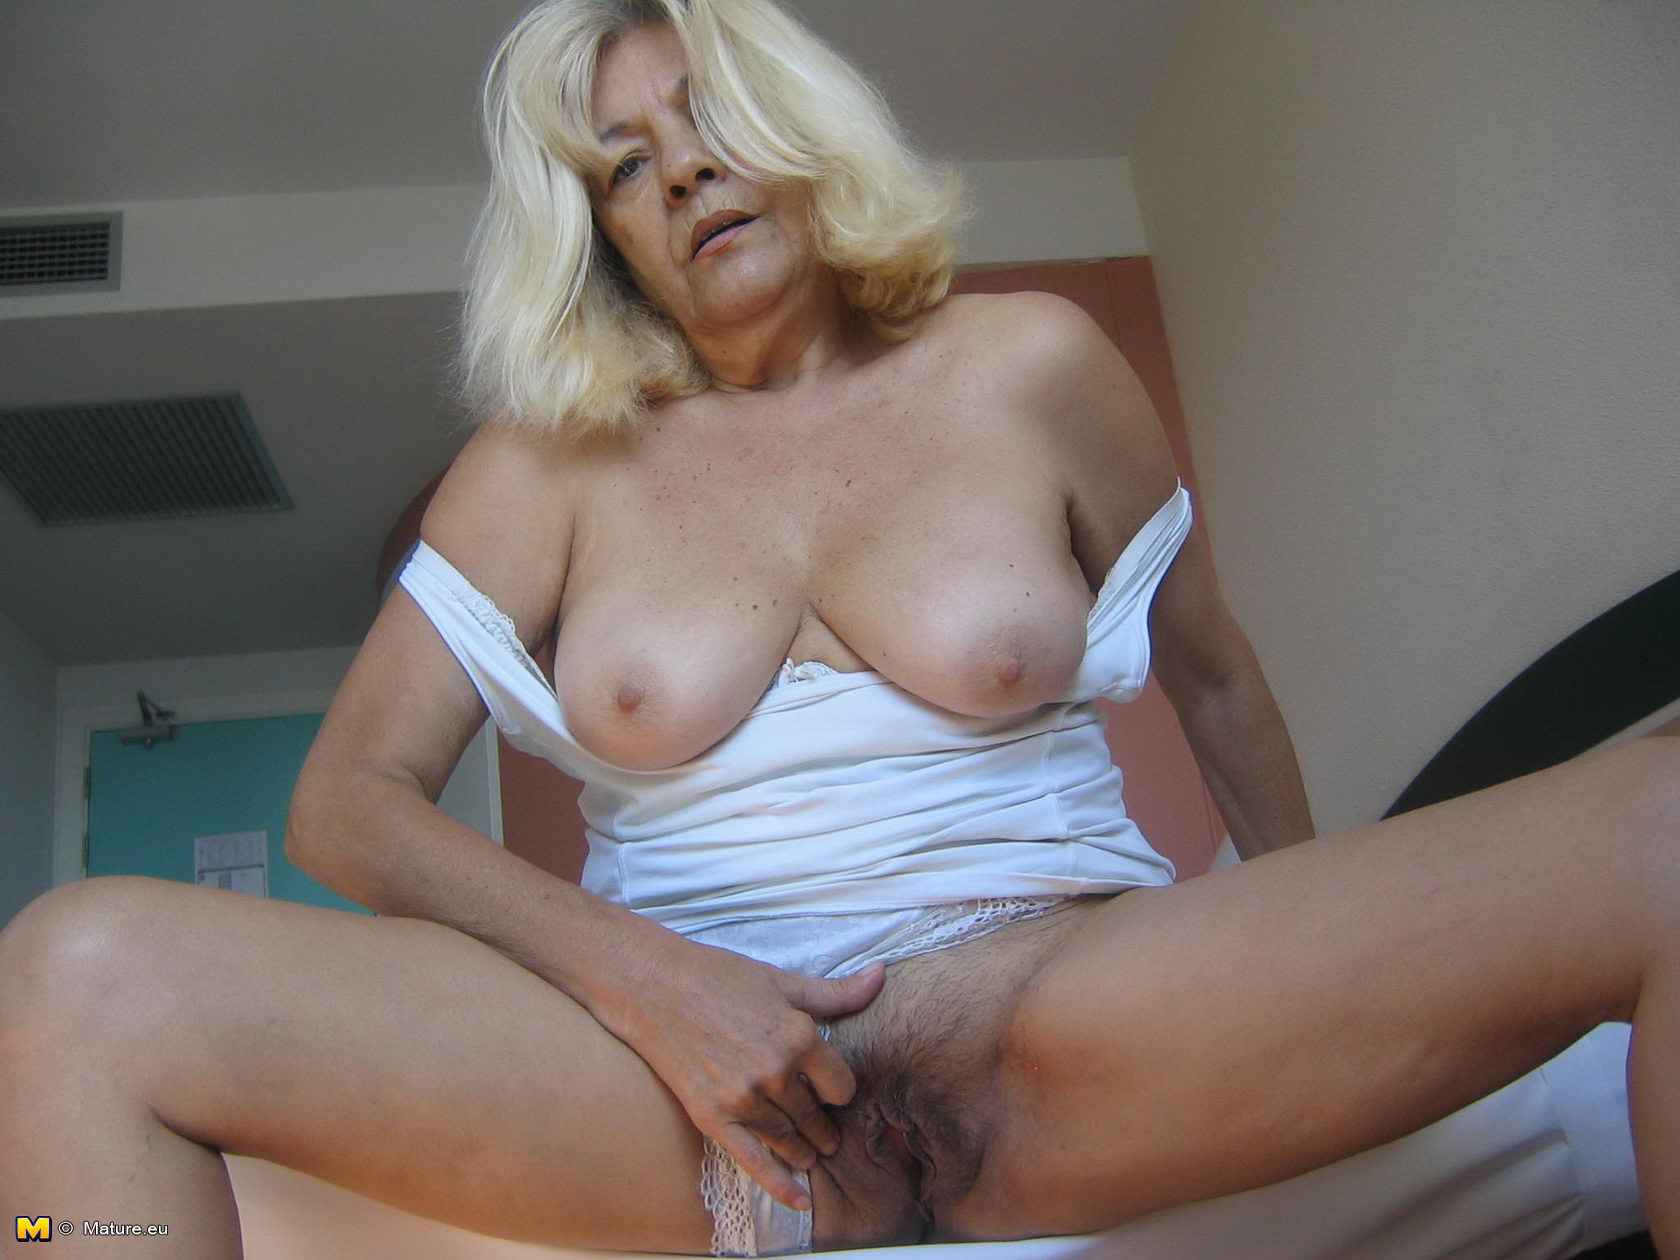 The Horny Mature gets all she needs